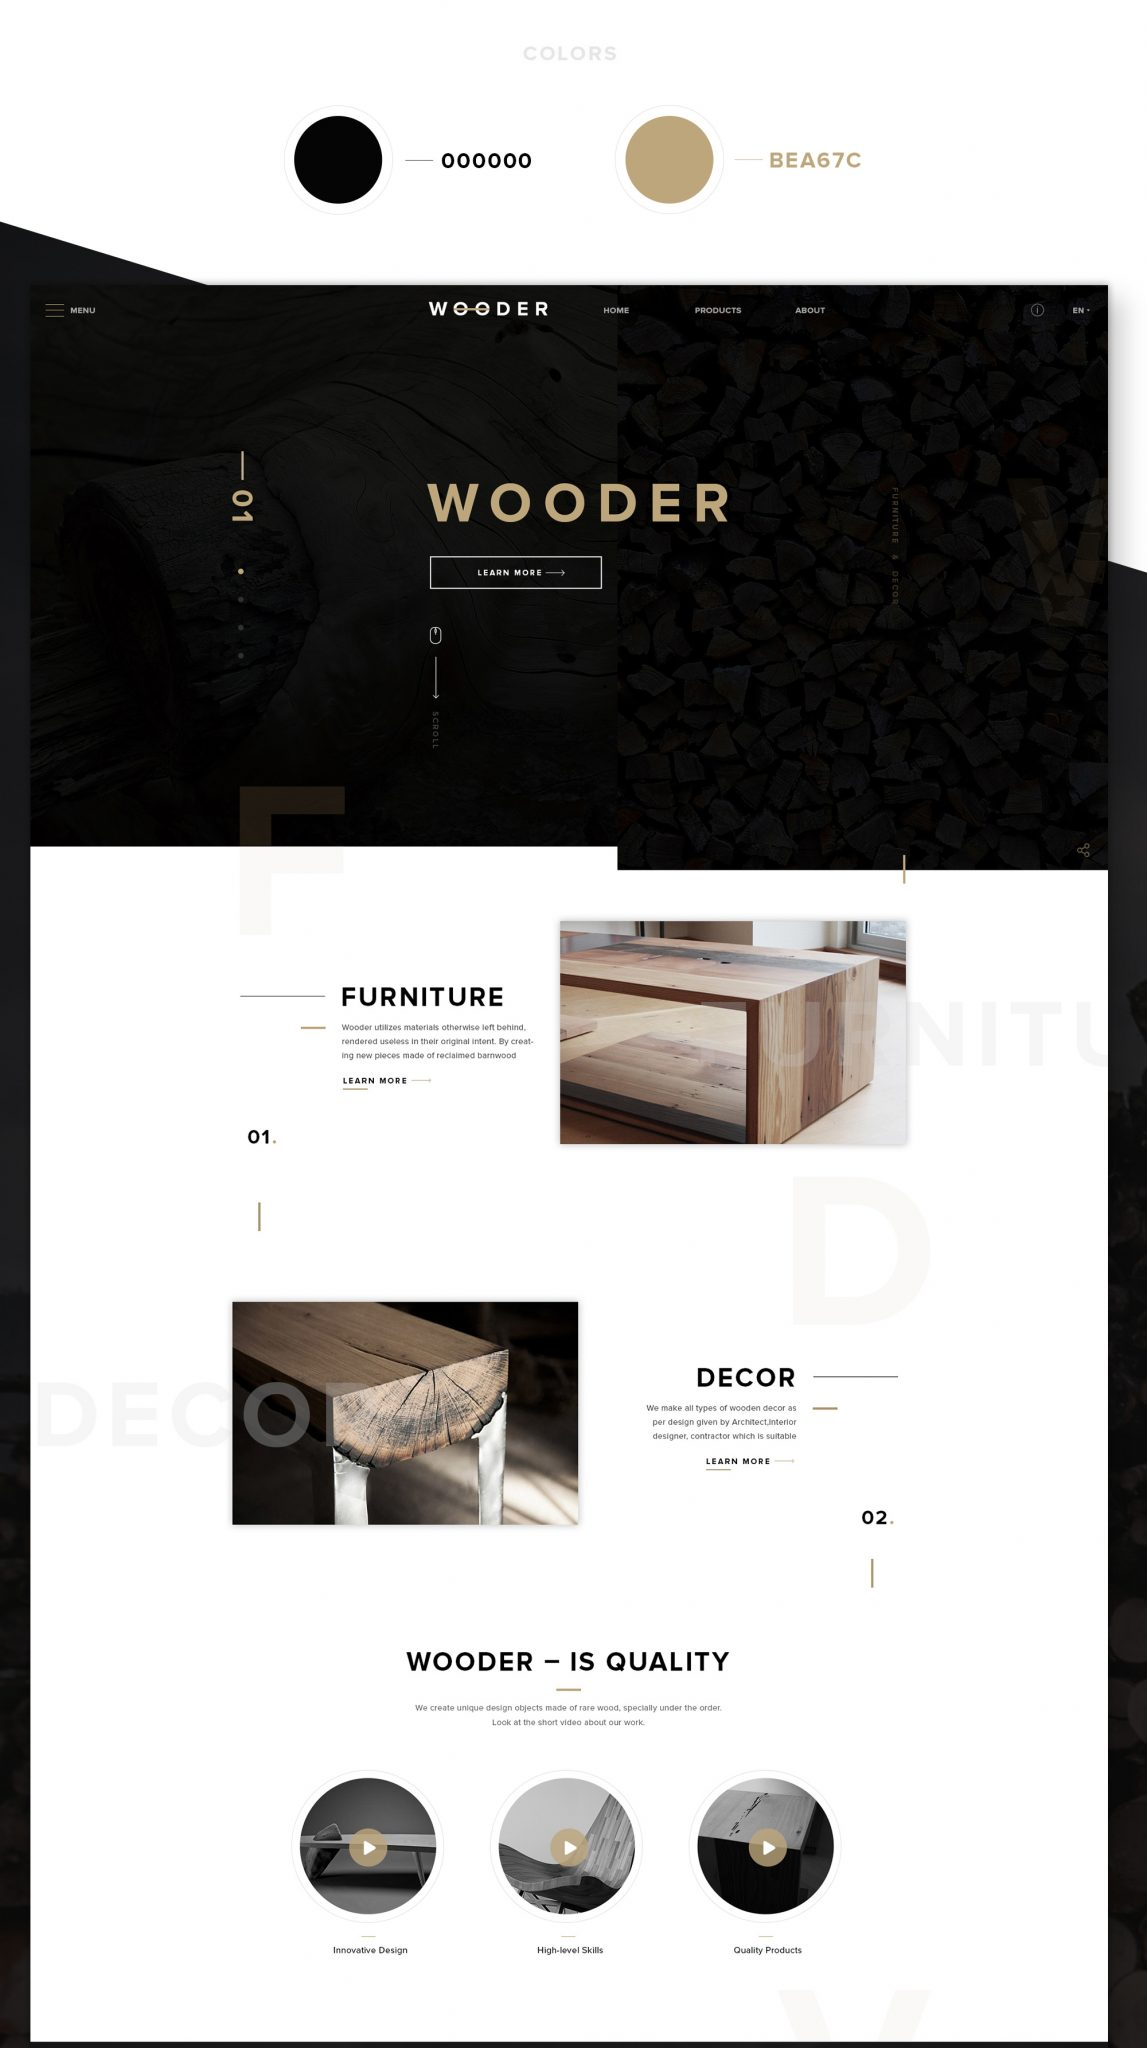 WOODER Free PSD Website Template for Wood Furniture Company